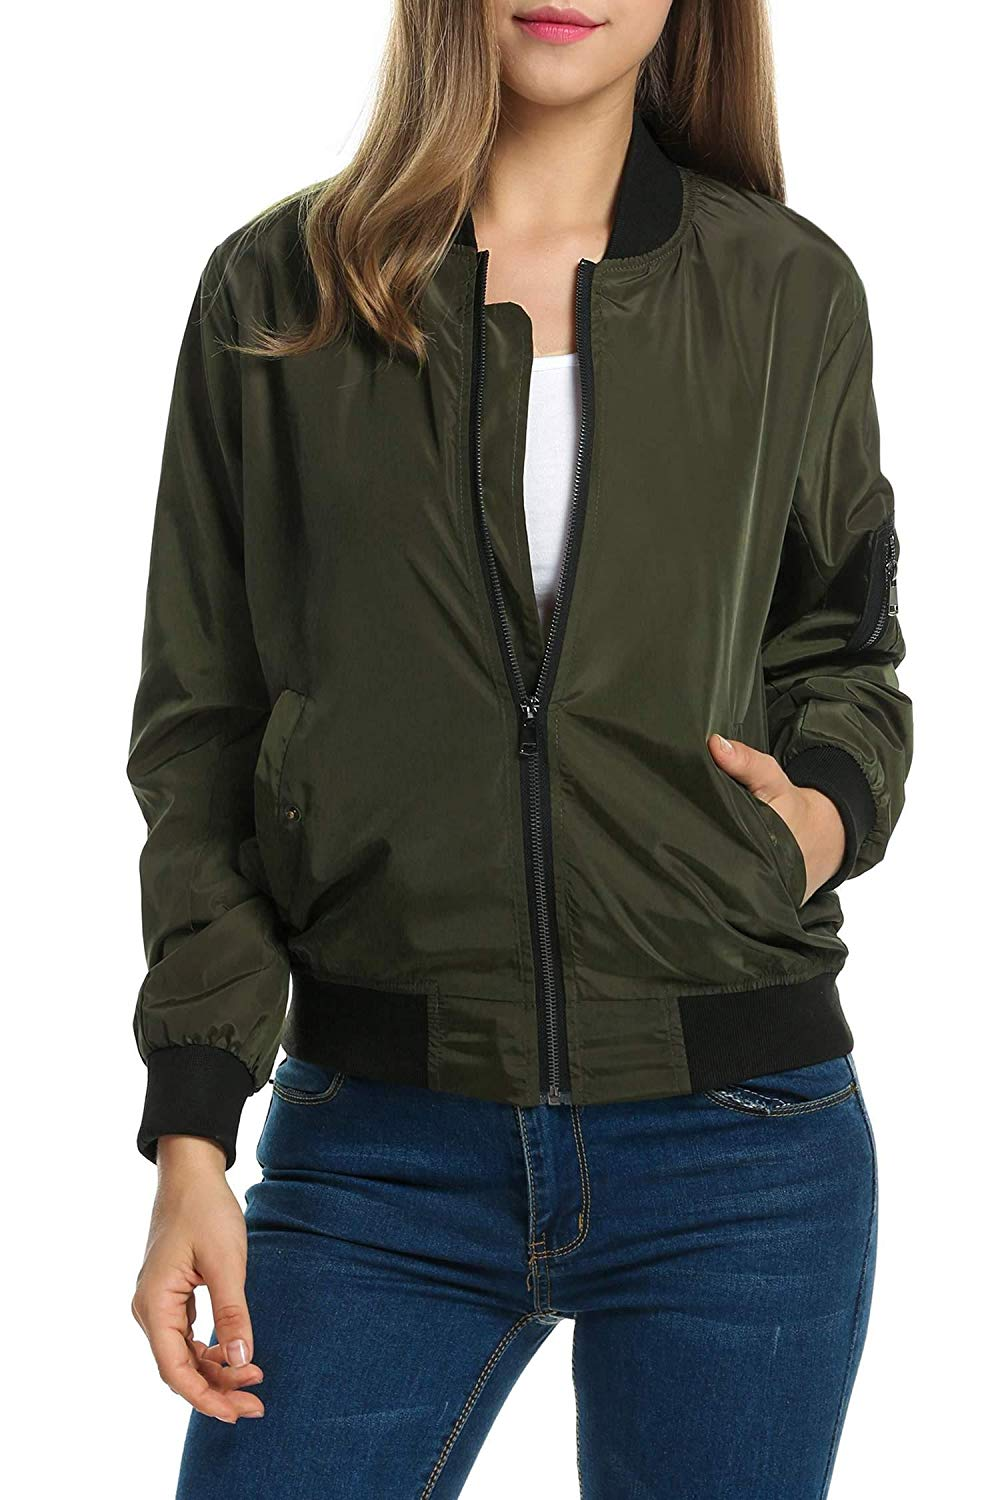 19da8ed3eac0 Get Quotations · Vanilo Ladies Bomber Jacket Military Green Bomber Jacket  Casual Jackets